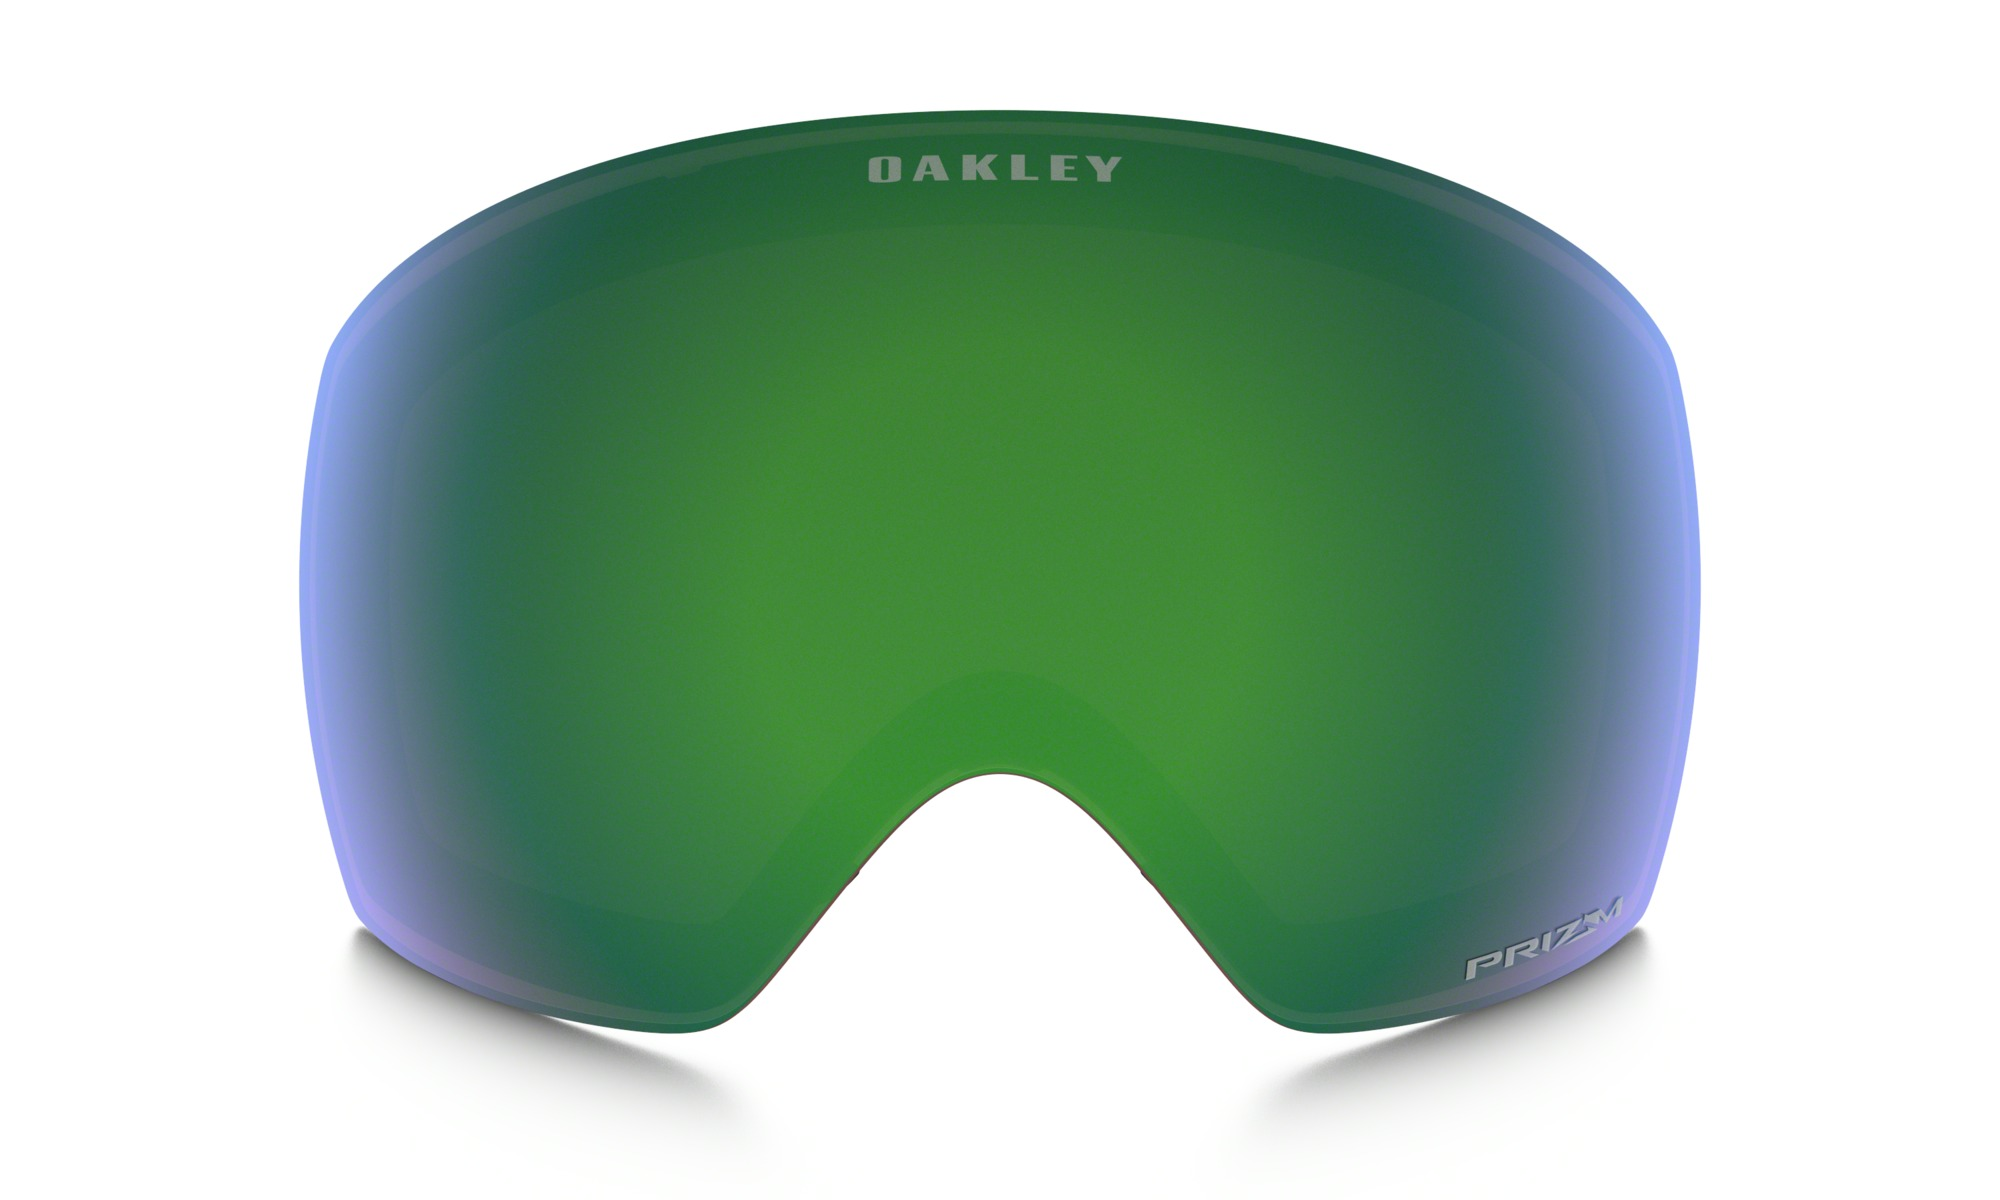 oakley snow goggle lenses  Oakley Goggle Lens Color / Tint Guide